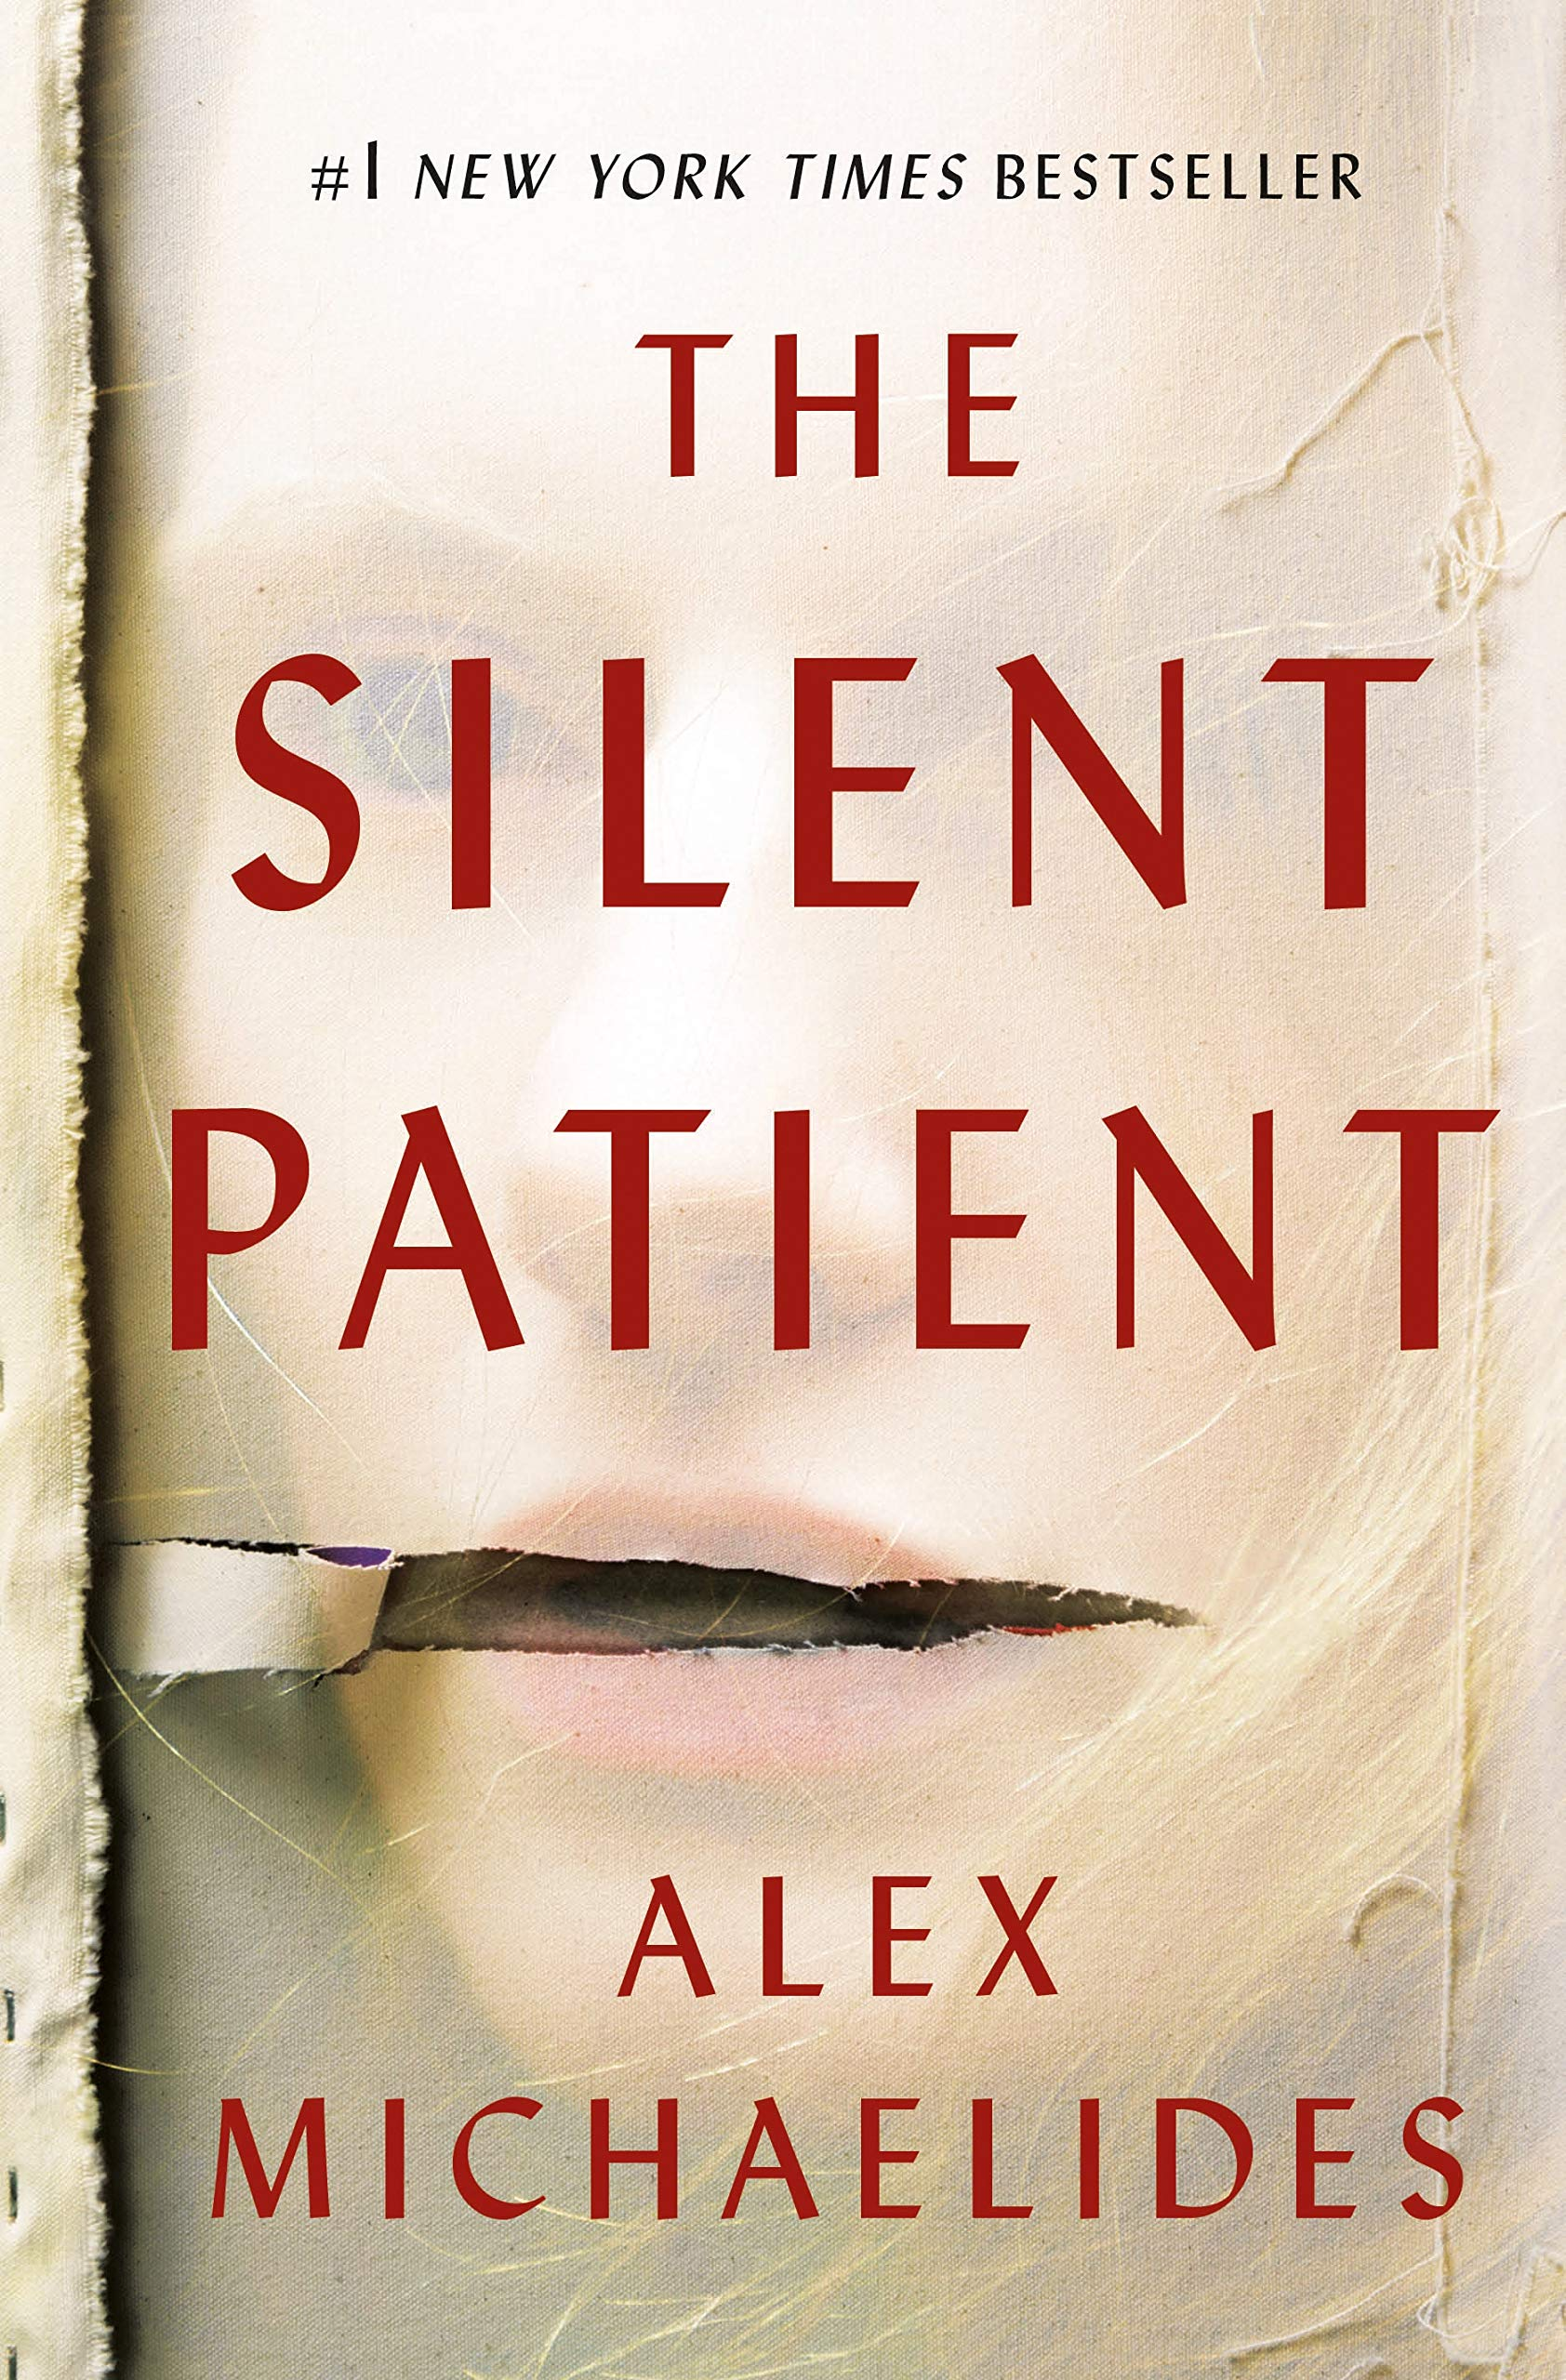 Amazon.com: The Silent Patient (9781250301697): Michaelides, Alex ...